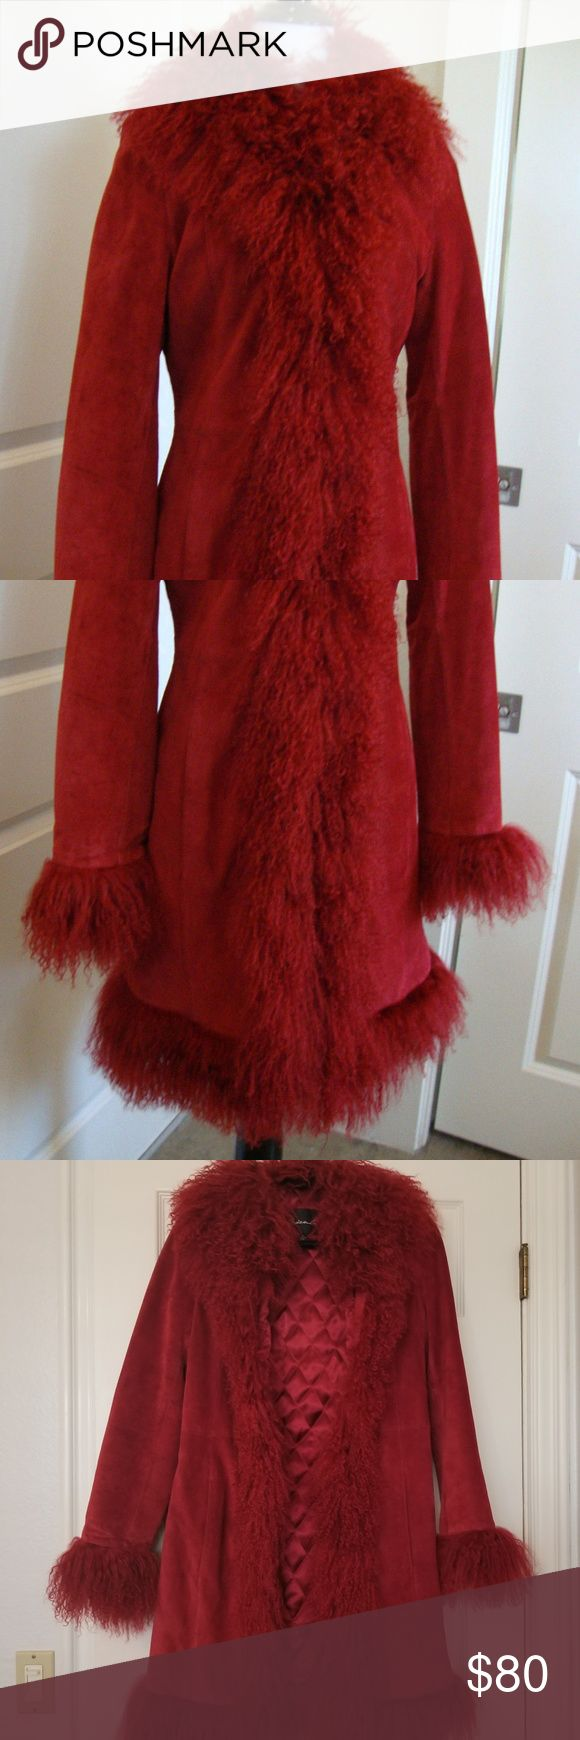 (SOLD) ARDEN B RED SUEDE MONGOLIAN FUR COAT- S Gorgeous red suede coat trimmed wit Mongolian lamb fur in very good condition for a size S (sz 4-6). Color betw true cherry red & burgundy, like ripe raspberry. Lined in silky vibrant red w/ light quilted padding for warmth.   3 hooks & eyes to fasten.  2 small patches of spots, one on each of bottom corners of inside lining.  Lightest stray marks on the suede at the back.  See photos.  Fur in excellent condition, fluffy & w/o tangles. Armpit to…